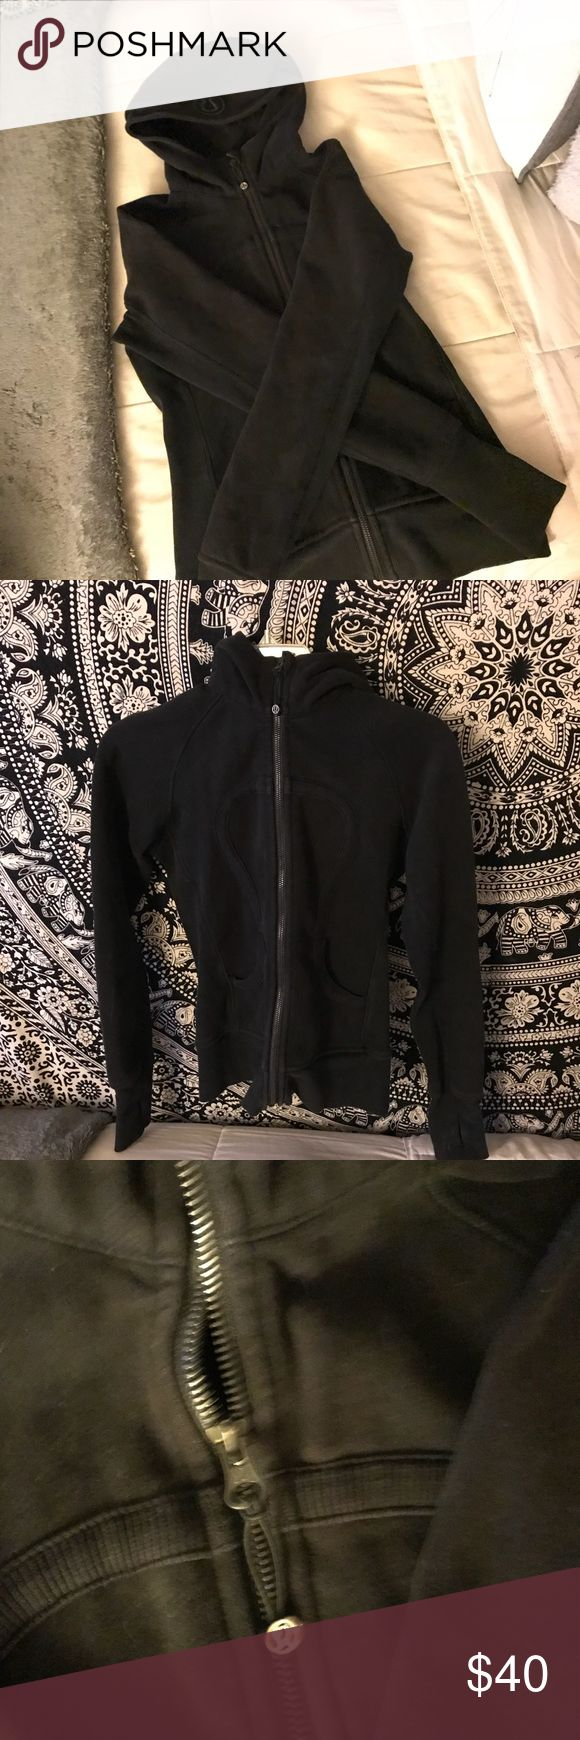 Lulu lemon all black zip up hoodie! Black shade is slightly faded but has no stains nor holes! Zipper works perfectly and is very warm.   Feel free to message me any questions regarding extra photos, sizing, modeling, & price! lululemon athletica Tops Sweatshirts & Hoodies